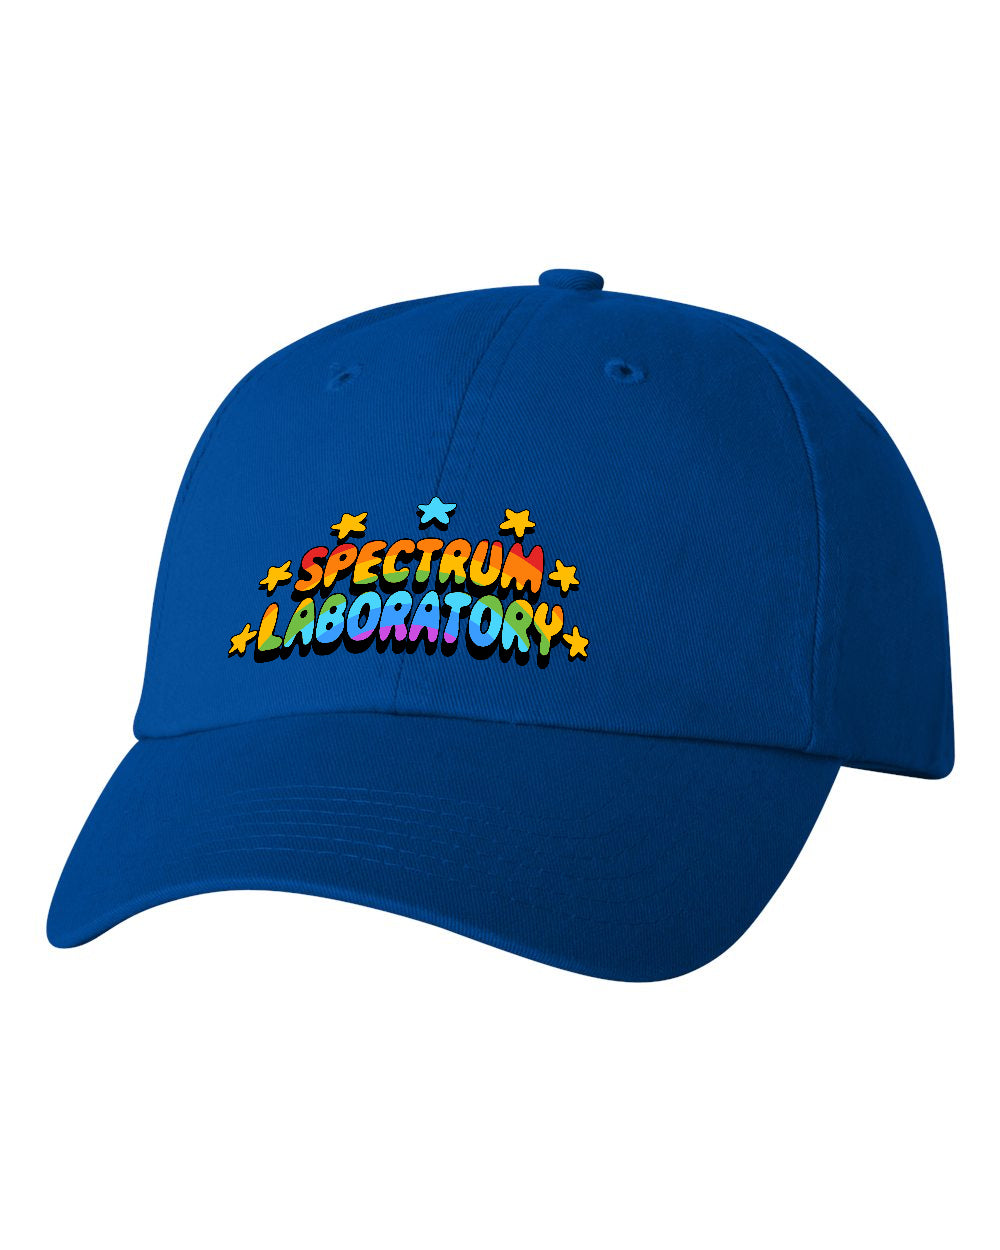 Spectrum Laboratory Dad Cap